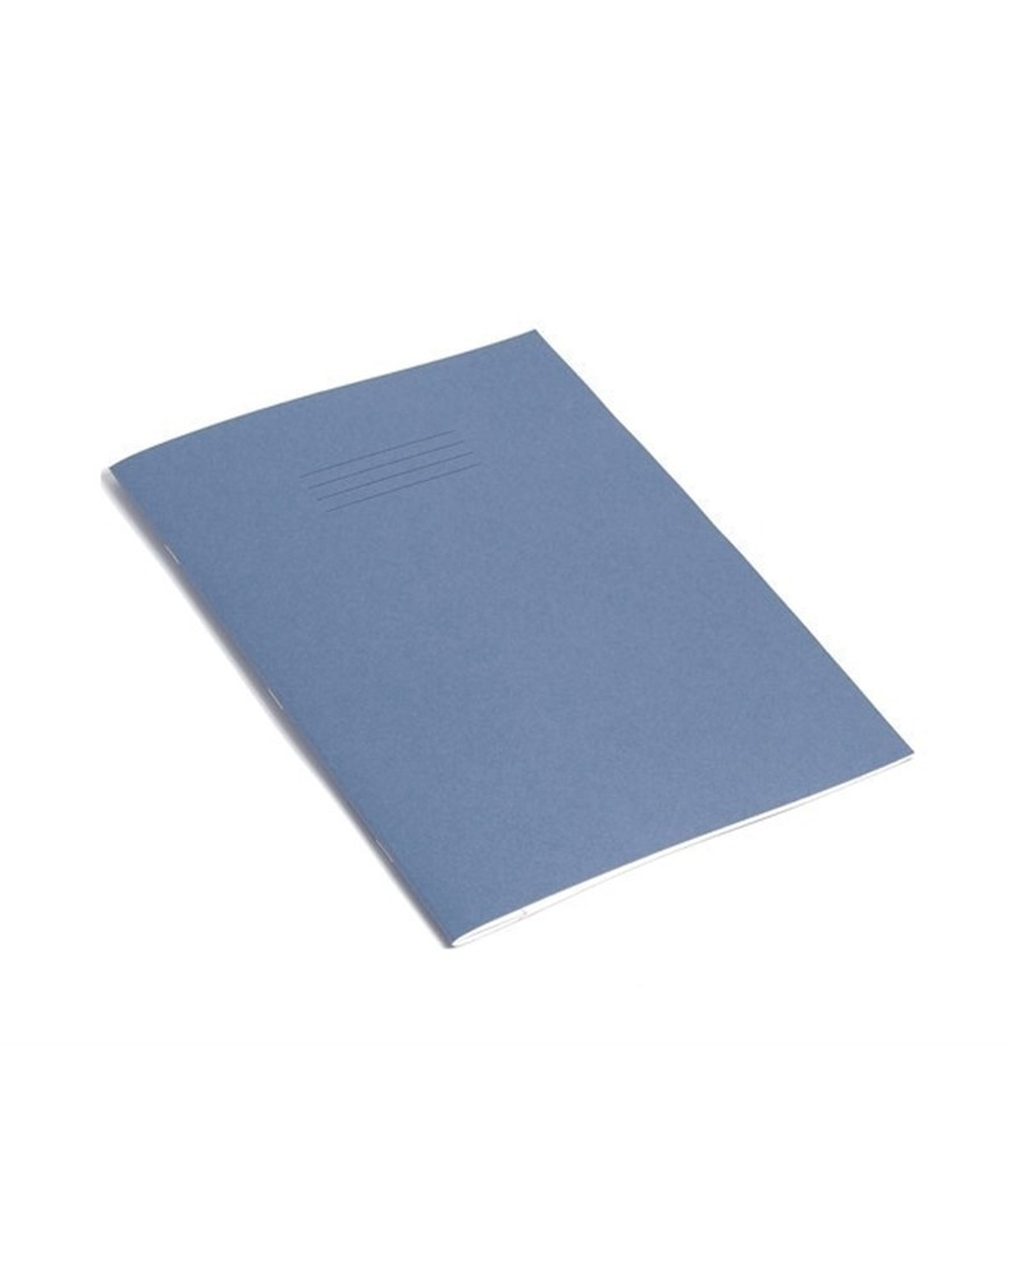 Exercise Book A4+ size (330 x 250mm) Light Blue Cover 8mm Ruled 40 Pages